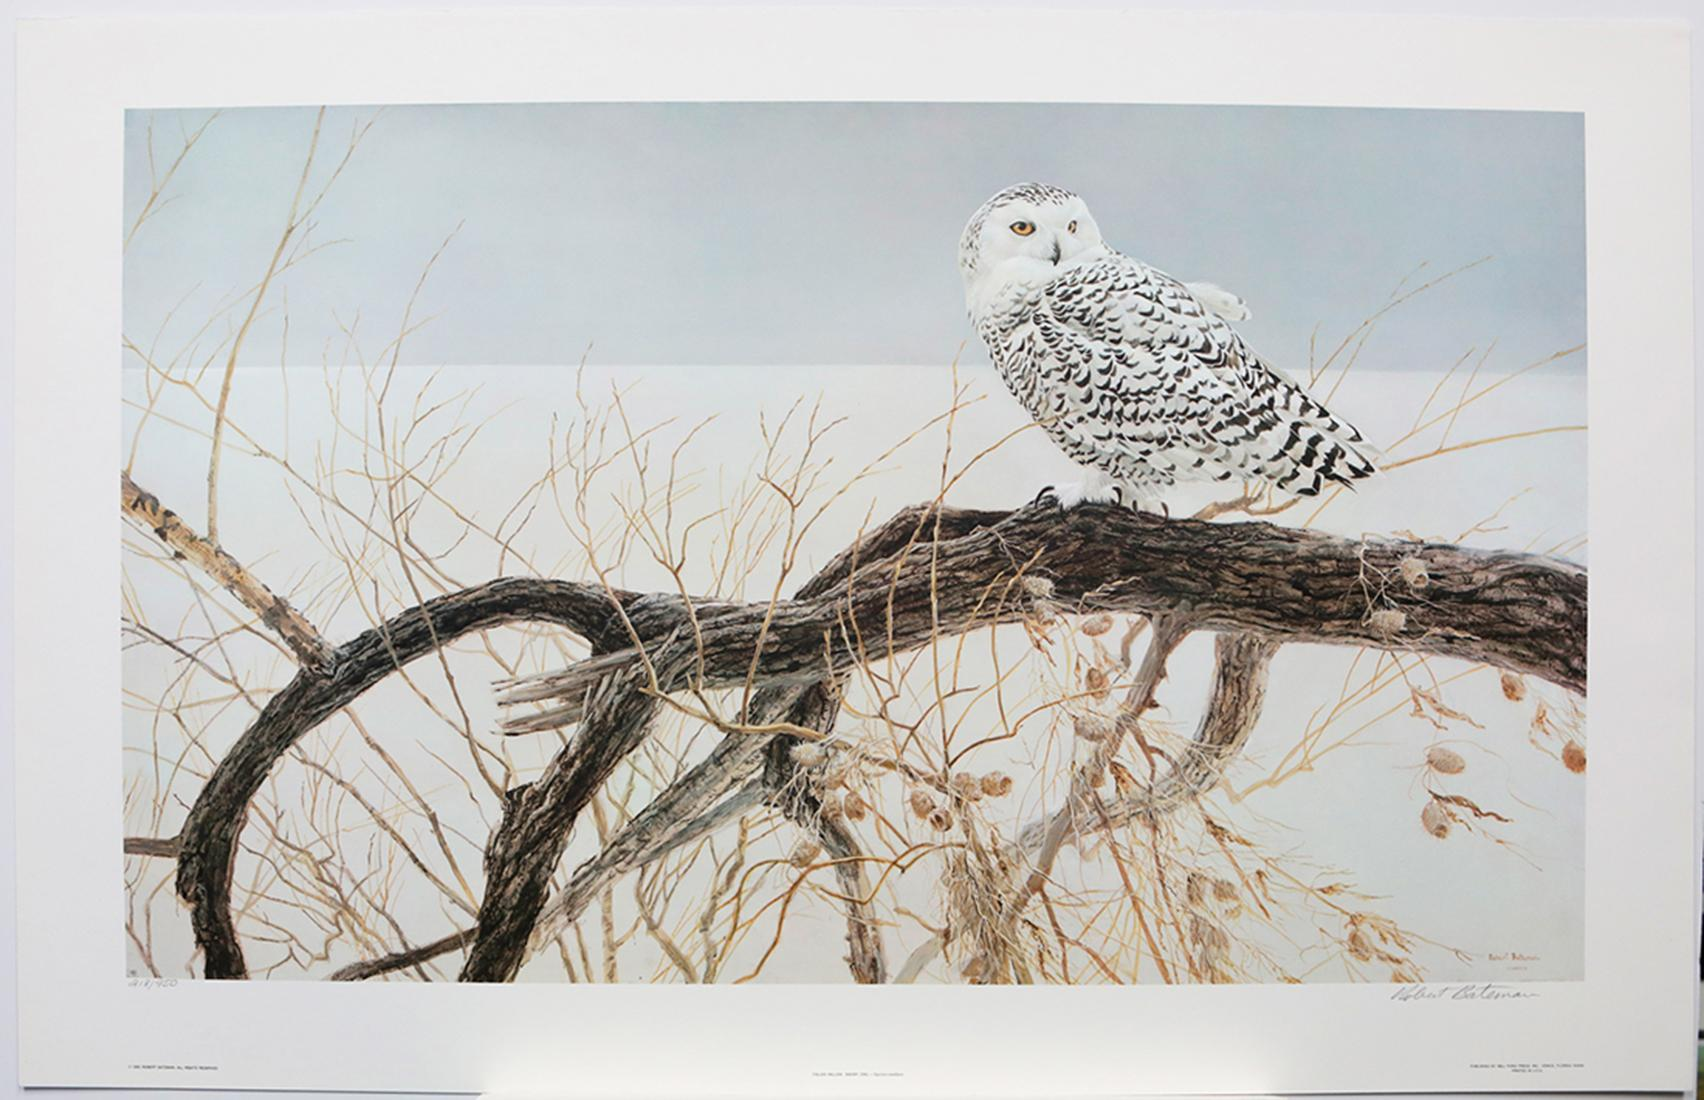 """Robert Bateman's """"Fallen Willow - Snowy Owl"""" Limited Edition Print Signed and Numbered"""